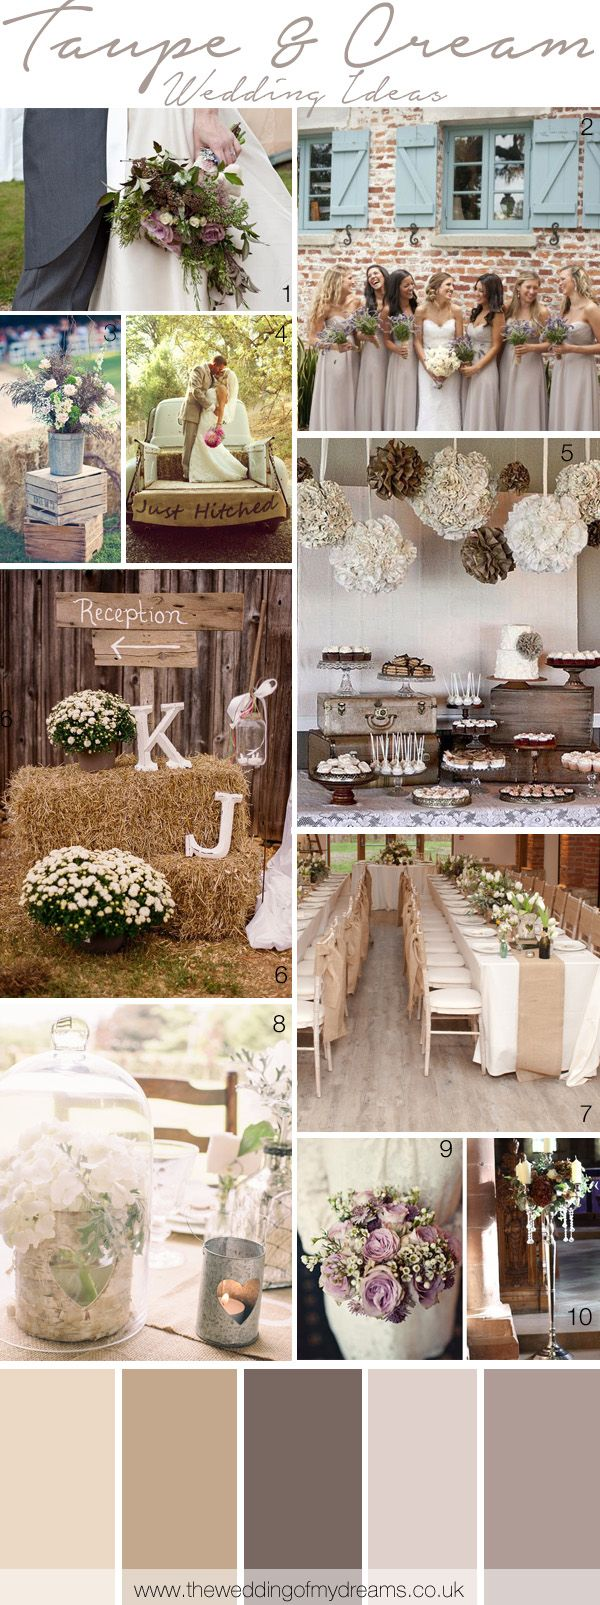 Cream and Taupe Wedding Inspiration and Ideas | www.endorajewellery.etsy.com - Custom Swarovski crystal jewelry